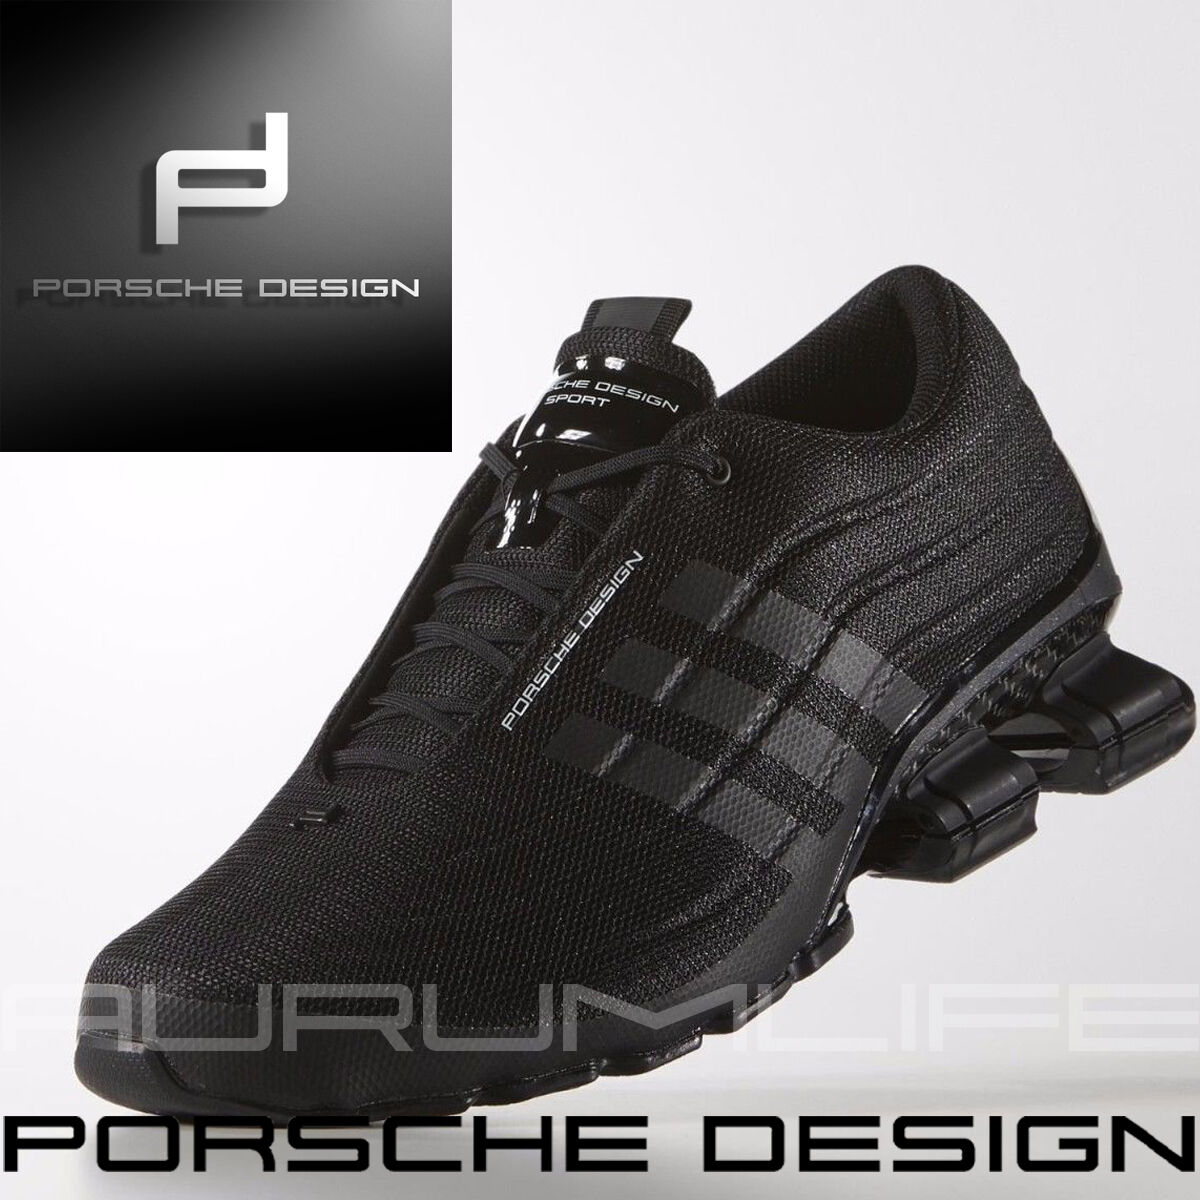 Adidas Porsche Design Bounce Shoes S4 Mens Black SPORT SIZE US 9.5 B35635